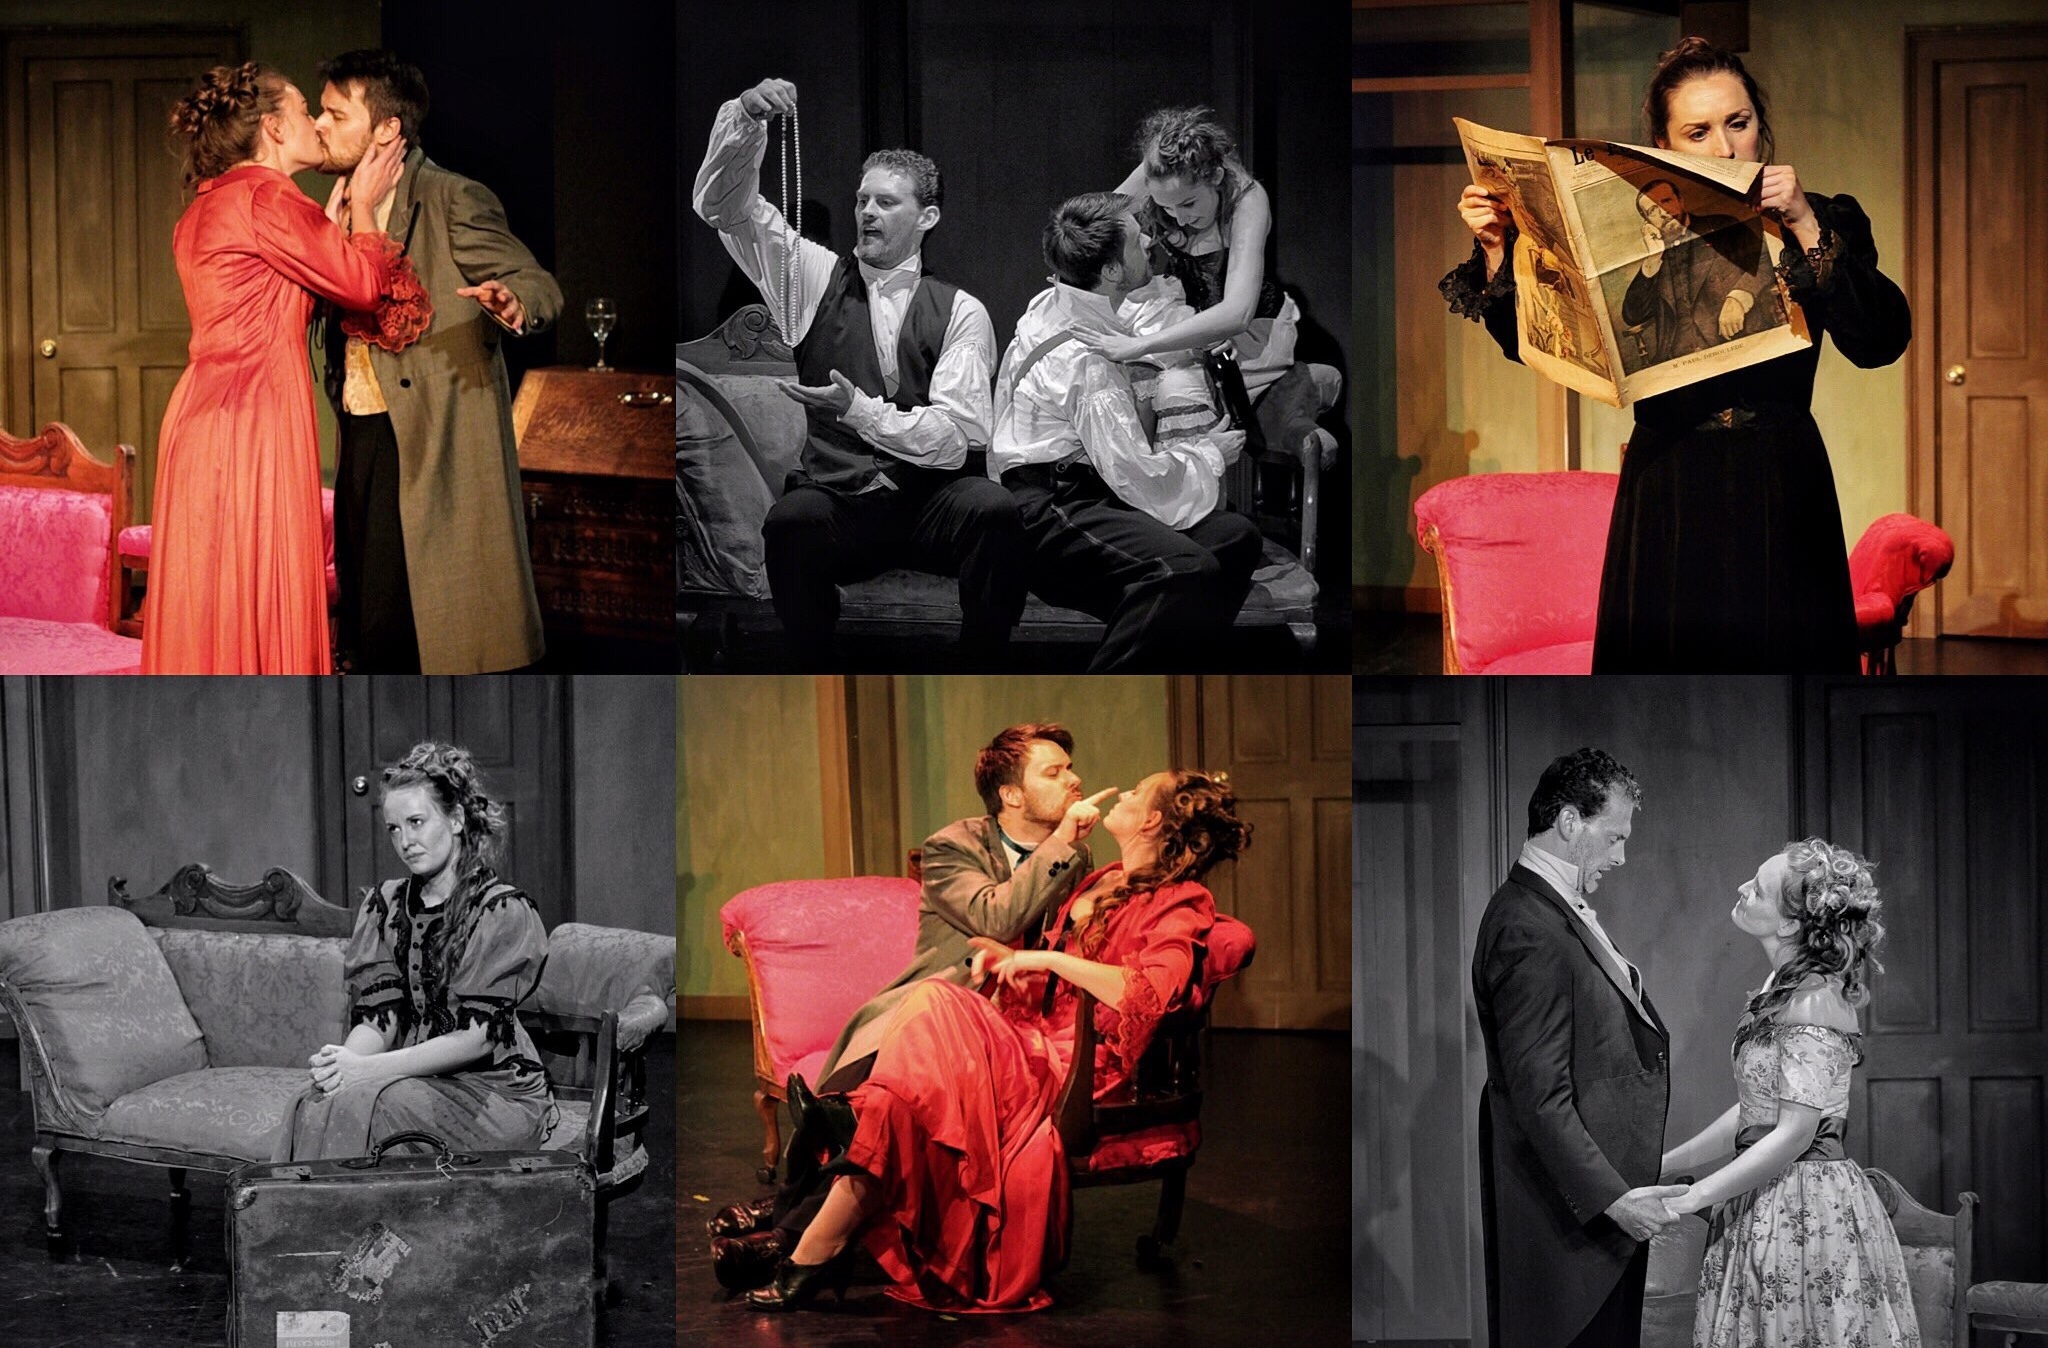 Production stills from the theatrical debut of Glamour Girl at The Maltings Arts Theatre, St Albans, 2016